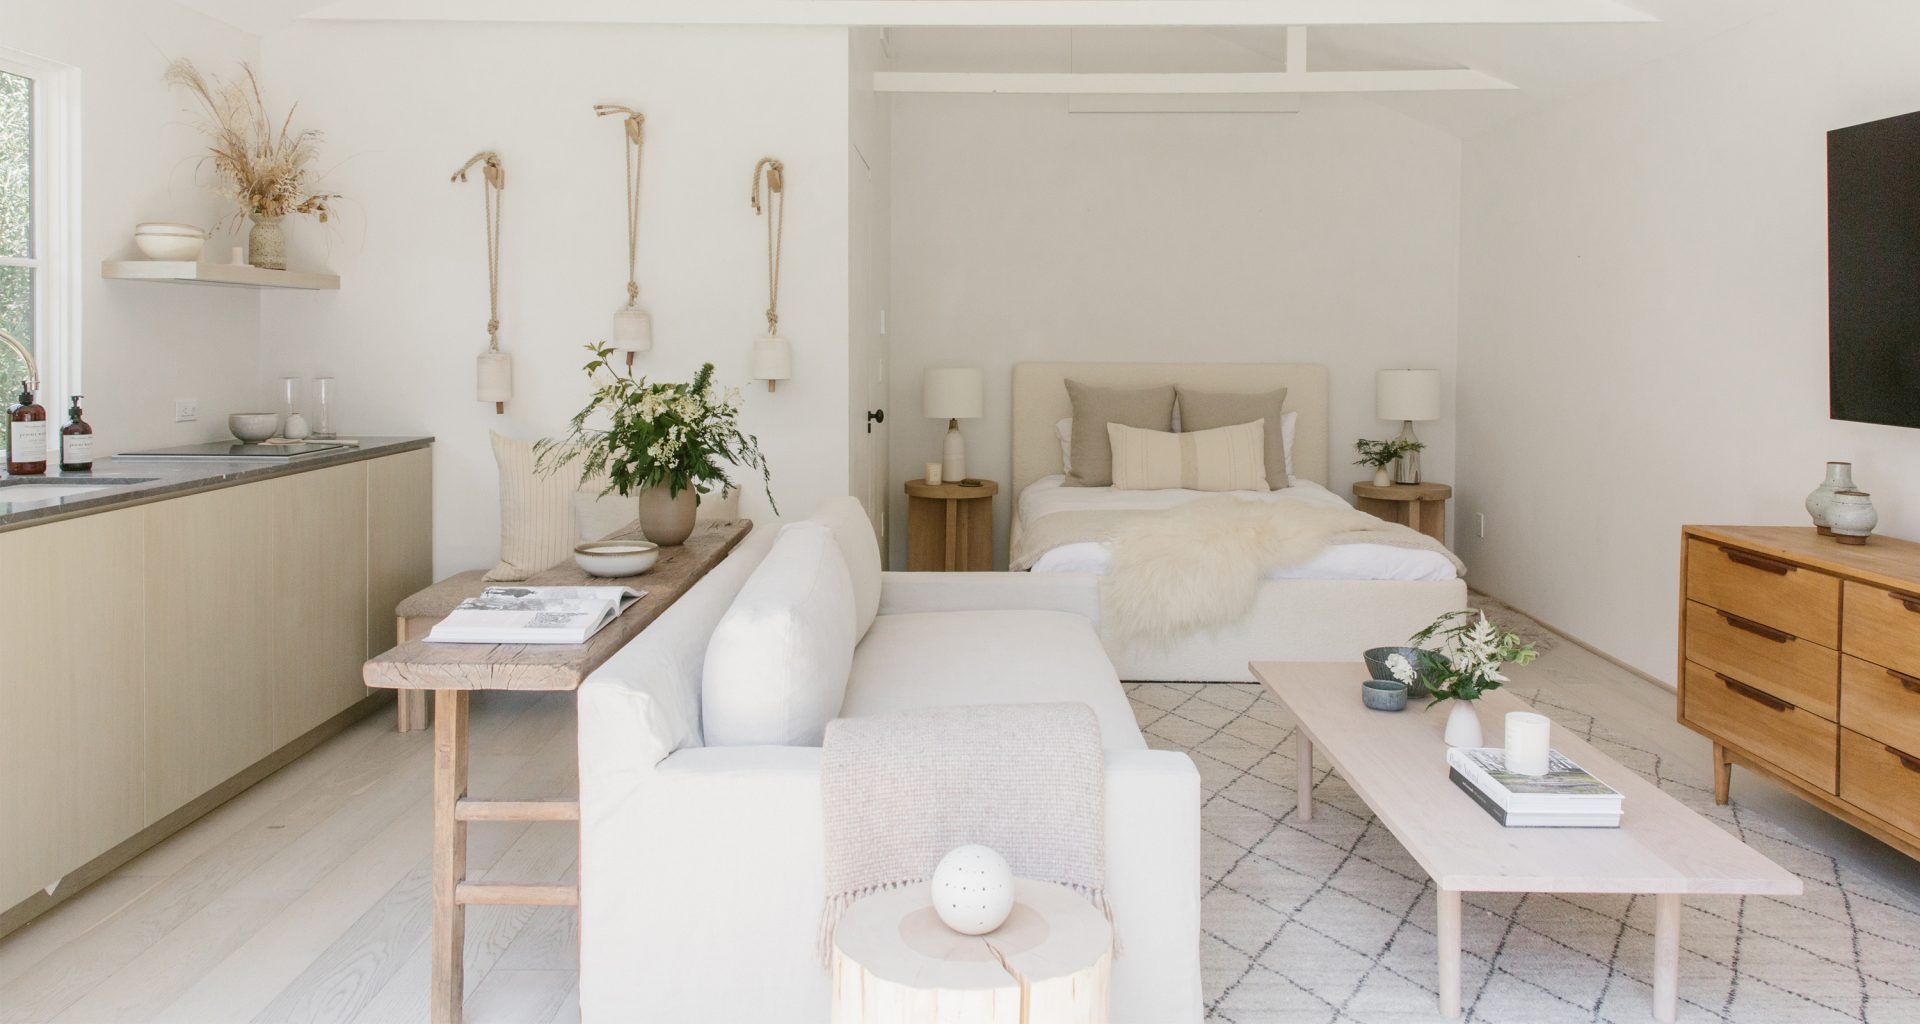 How to Bring Jenni's California-Inspired Style to Your Space